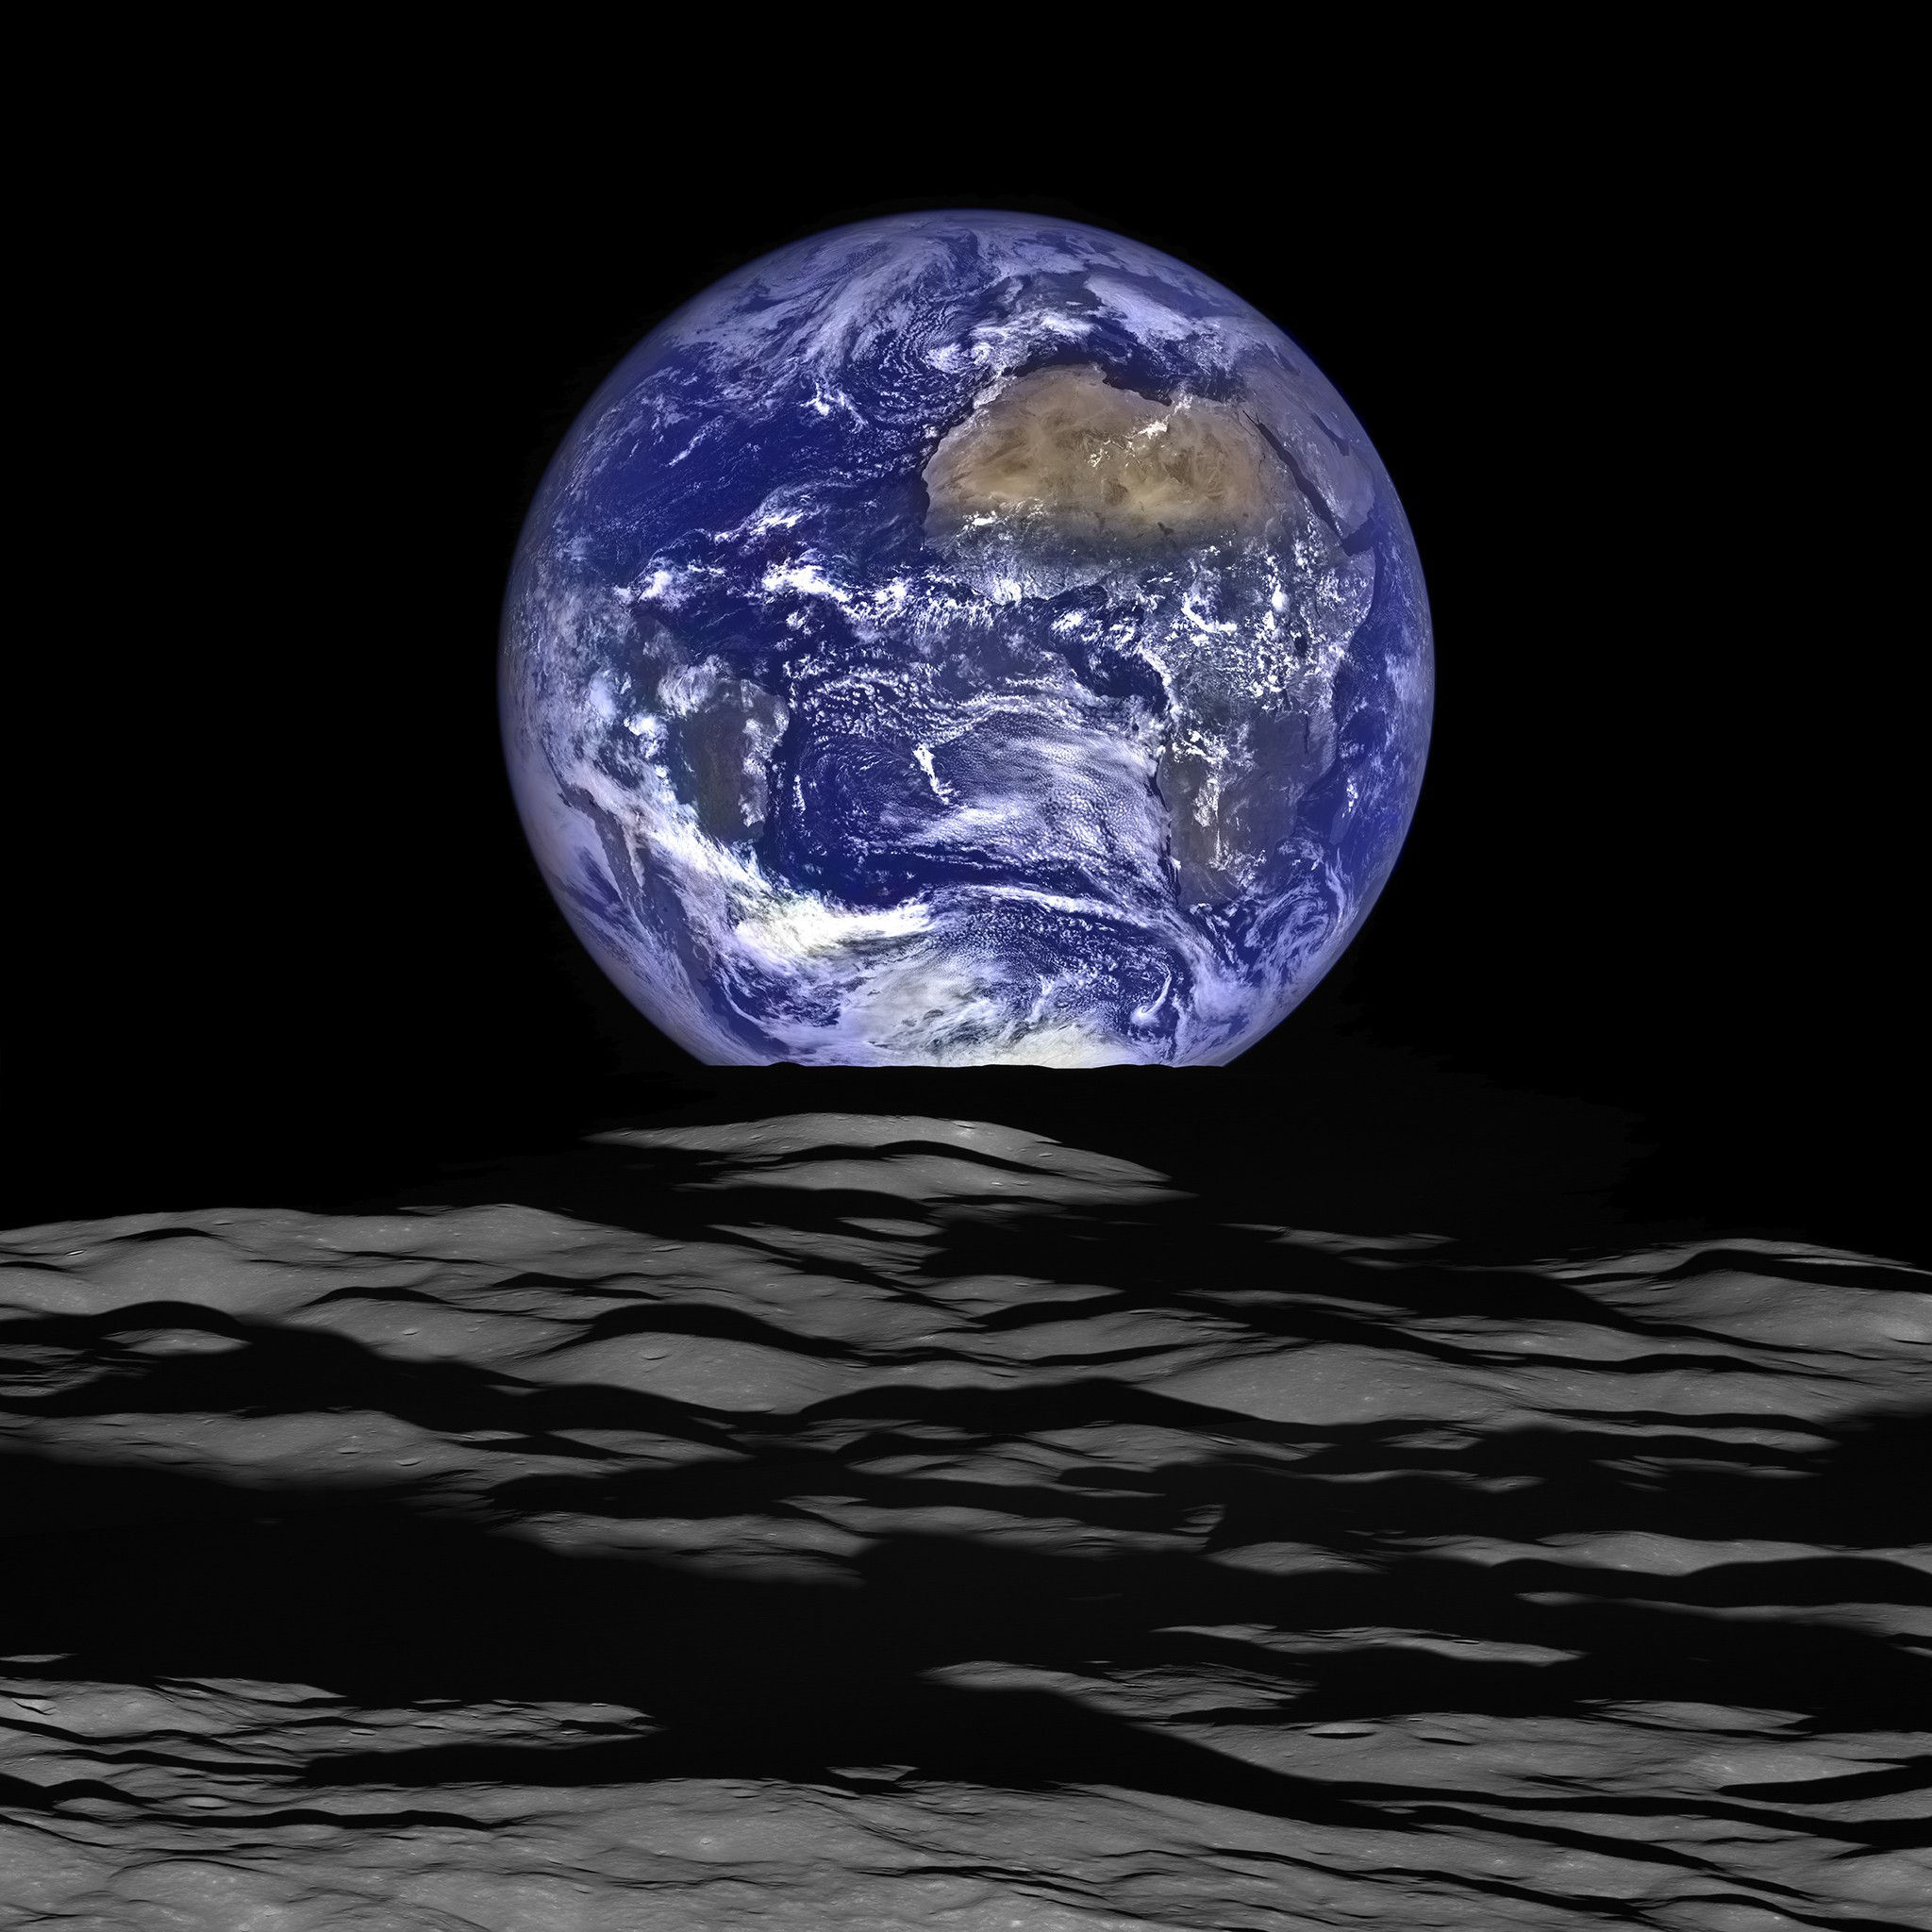 Real photo of Earth as viewed by Lunar Reconnaissance Orbiter (LRO)